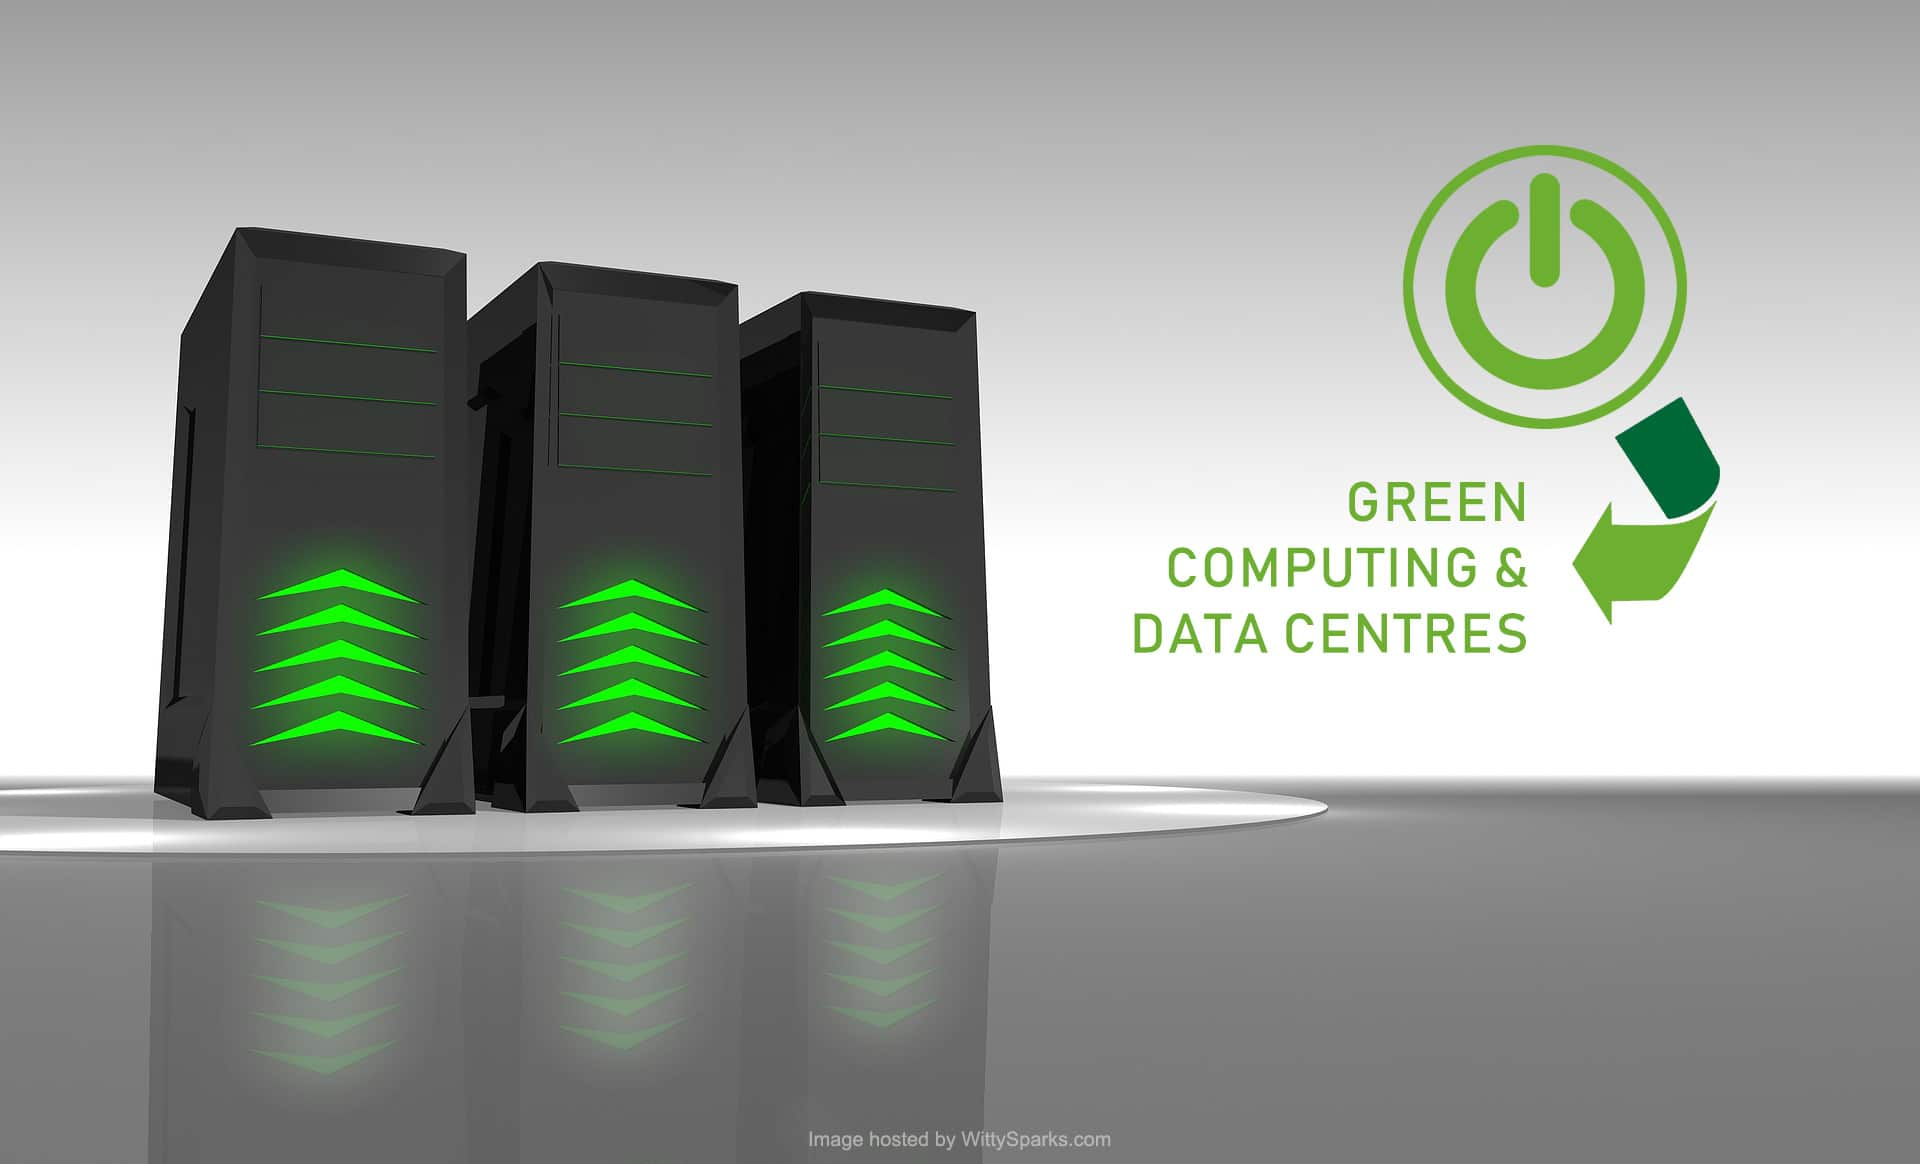 The Growing Need for Green Computing and Data Centers